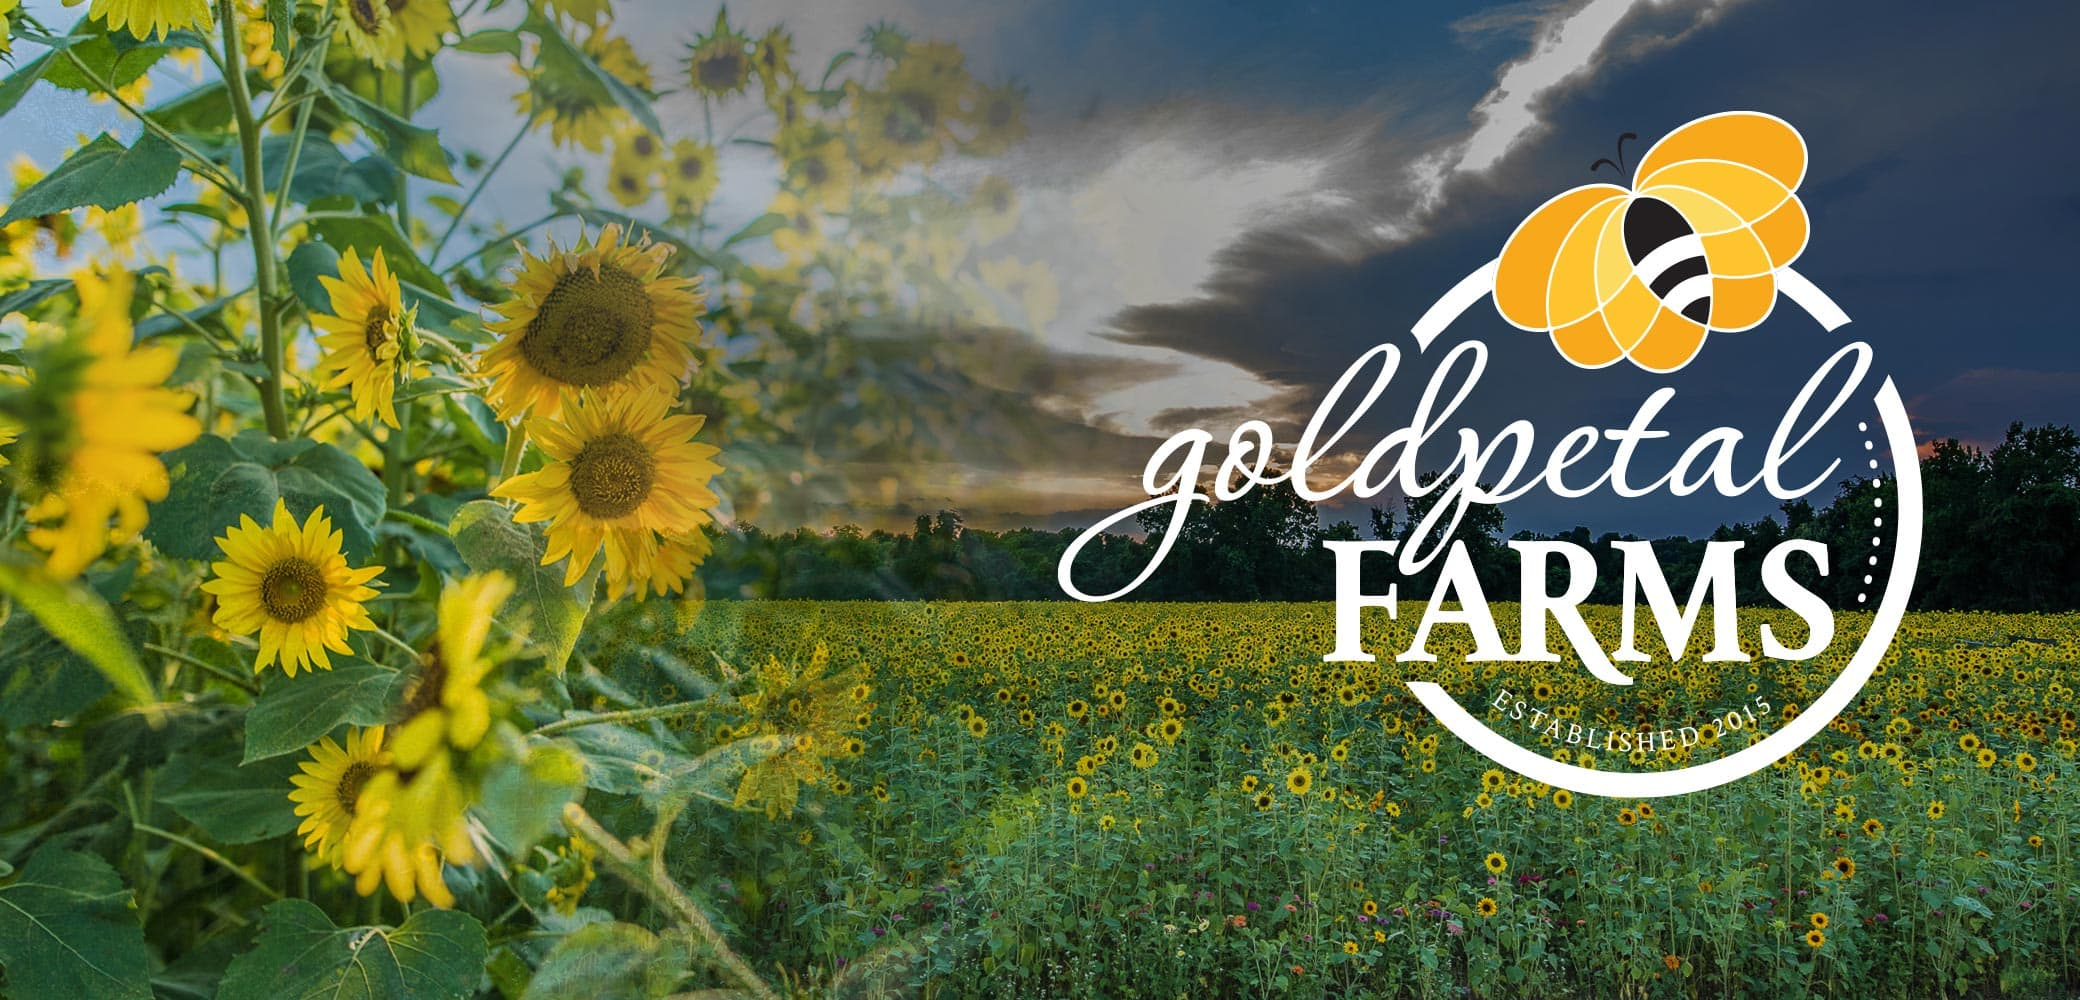 Goldpetal Farms Identity System Design by Red Chalk Studios